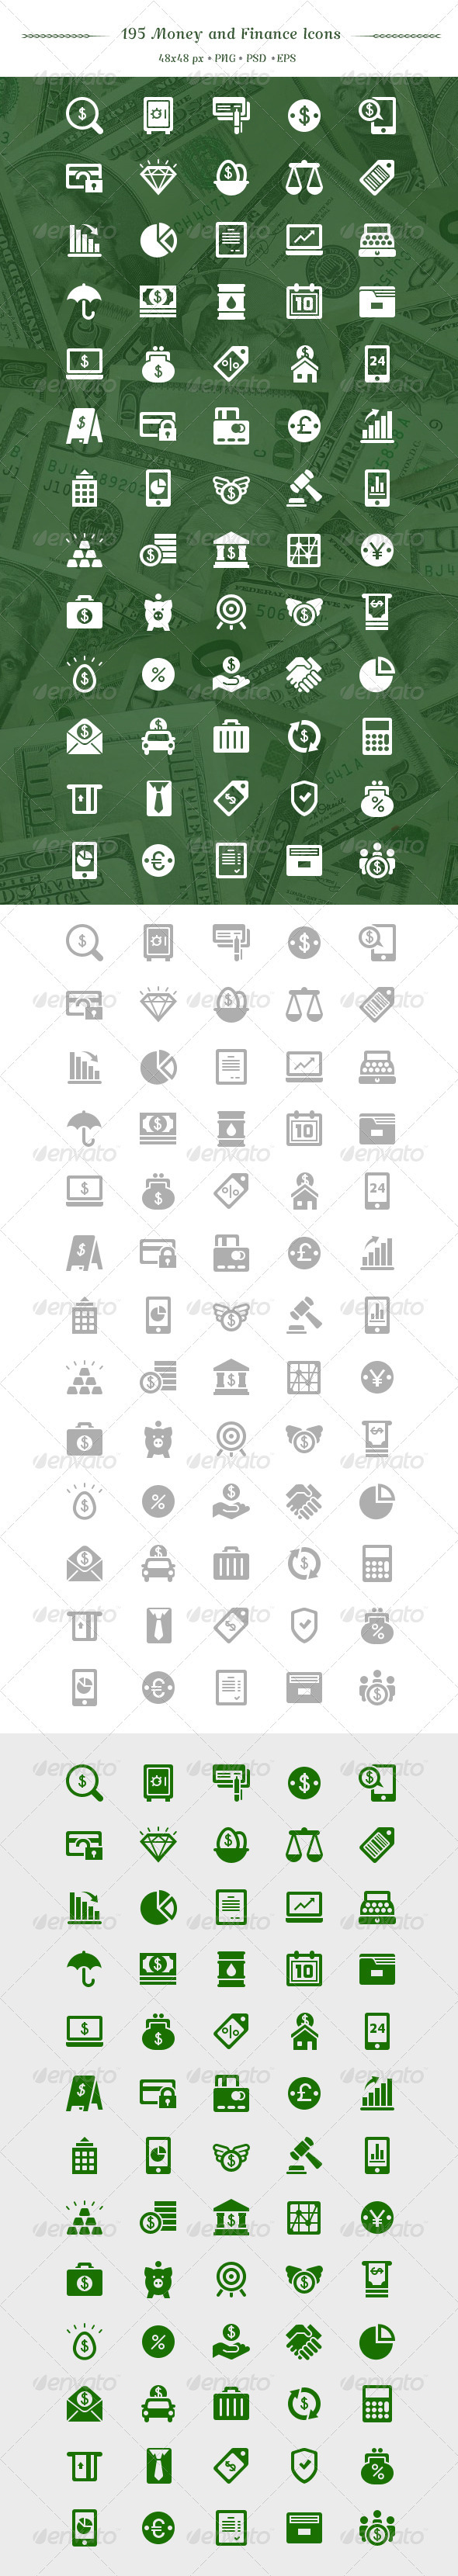 195 Money and Finance Vector Icon Set - Web Icons